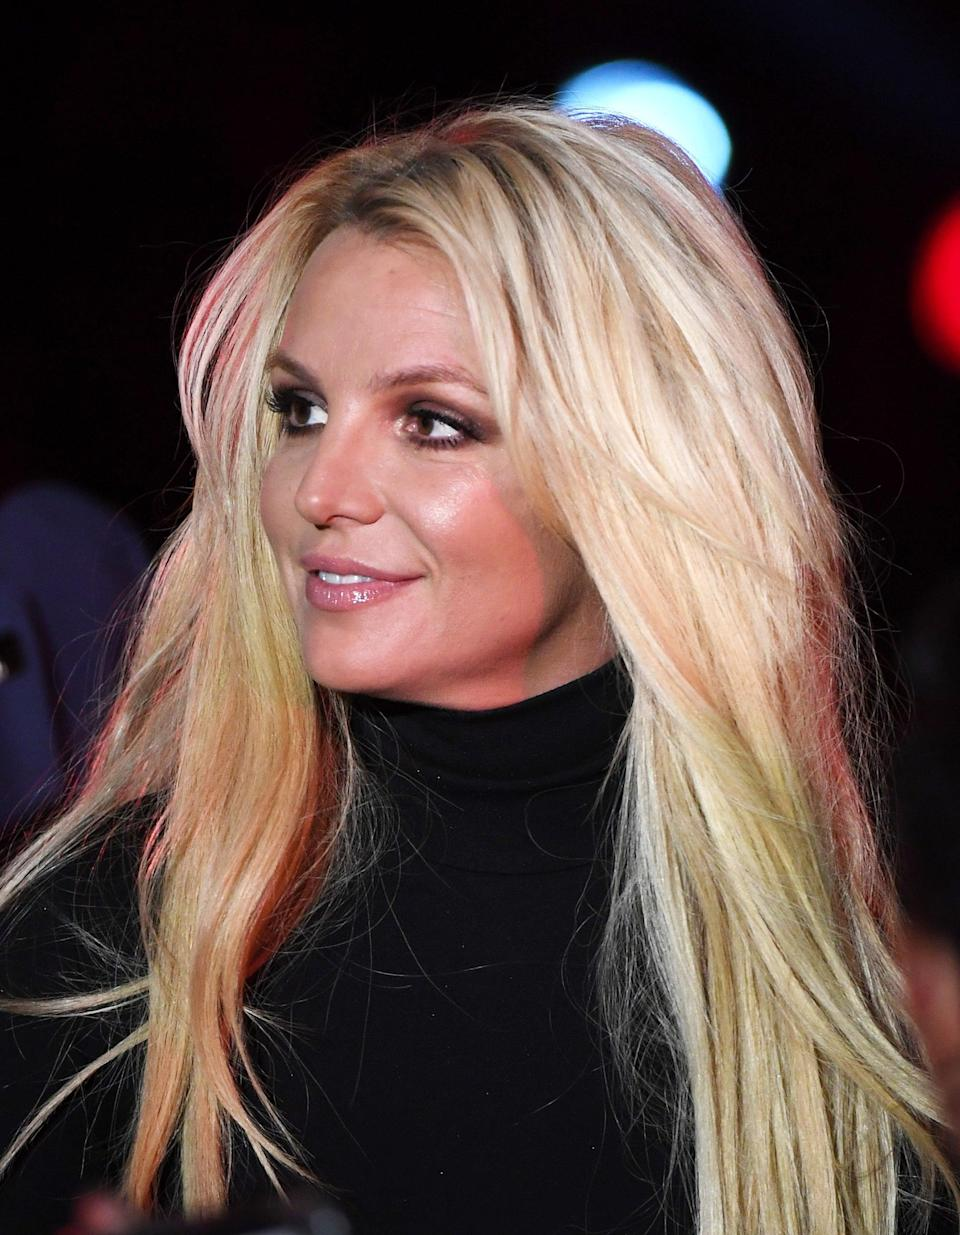 """<p>Following Larry's resignation, the singer's lawyer, Samuel Ingham III, filed court documents <a href=""""https://variety.com/2021/music/news/britney-spears-samuel-ingham-resign-conservatorship-1235012511/"""" class=""""link rapid-noclick-resp"""" rel=""""nofollow noopener"""" target=""""_blank"""" data-ylk=""""slk:asking to be dismissed as her counsel"""">asking to be dismissed as her counsel</a>. """"Samuel D. Ingham III hereby resigns as court-appointed counsel for Britney Jean Spears, conservatee, effective upon the appointment of new court-appointed counsel,"""" the court filings read, according to <strong>Variety</strong>. </p> <p>Britney's conservator, Jodi Montgomery, also released a statement to <strong>People</strong> saying <a href=""""https://people.com/music/britney-spears-conservator-jodi-montgomery-is-not-resigning/"""" class=""""link rapid-noclick-resp"""" rel=""""nofollow noopener"""" target=""""_blank"""" data-ylk=""""slk:she has no plans of stepping down as the singer's conservator"""">she has no plans of stepping down as the singer's conservator</a>. """"She remains committed to steadfastly supporting Ms. Spears in every way she can within the scope of her duties as a conservator of the person,"""" Jodi's lawyer Lauriann Wright said in a statement. """"Ms. Spears as recently as yesterday has asked Ms. Montgomery to continue to serve. Ms. Montgomery will continue to serve as a conservator for as long as Ms. Spears and the Court desire her to do so.""""</p> <p>A day later, Britney's mother <a href=""""http://people.com/music/britney-spears-mom-lynne-says-singer-shouldnt-be-held-2008-standard-petitions-for-private-counsel/"""" class=""""link rapid-noclick-resp"""" rel=""""nofollow noopener"""" target=""""_blank"""" data-ylk=""""slk:Lynne Spears filed a petition"""">Lynne Spears filed a petition</a> for permission for the singer to hire her own lawyer. """"Her capacity is certainly different today than it was in 2008, and Conservatee should no longer be held to the 2008 standard, whereby she was found to 'not have the capacity to retain counsel,'"""" the filin"""